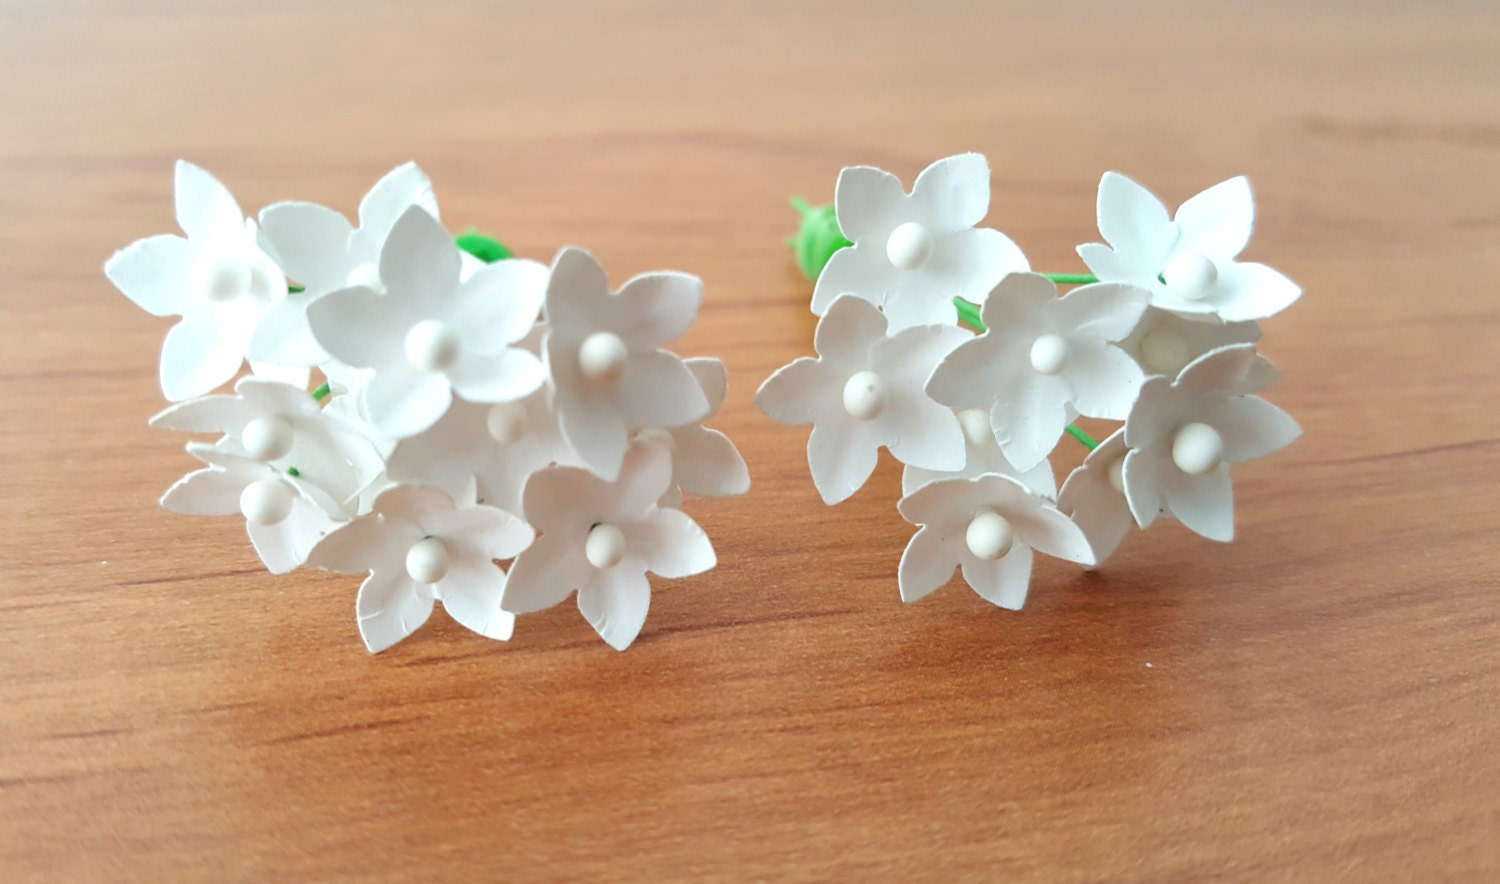 Small paper flowers craft - Small Paper Flowers Set Of 100 White Paper Flowers Tiny Paper Flowers Mini Paper Flowers White Craft Flowers